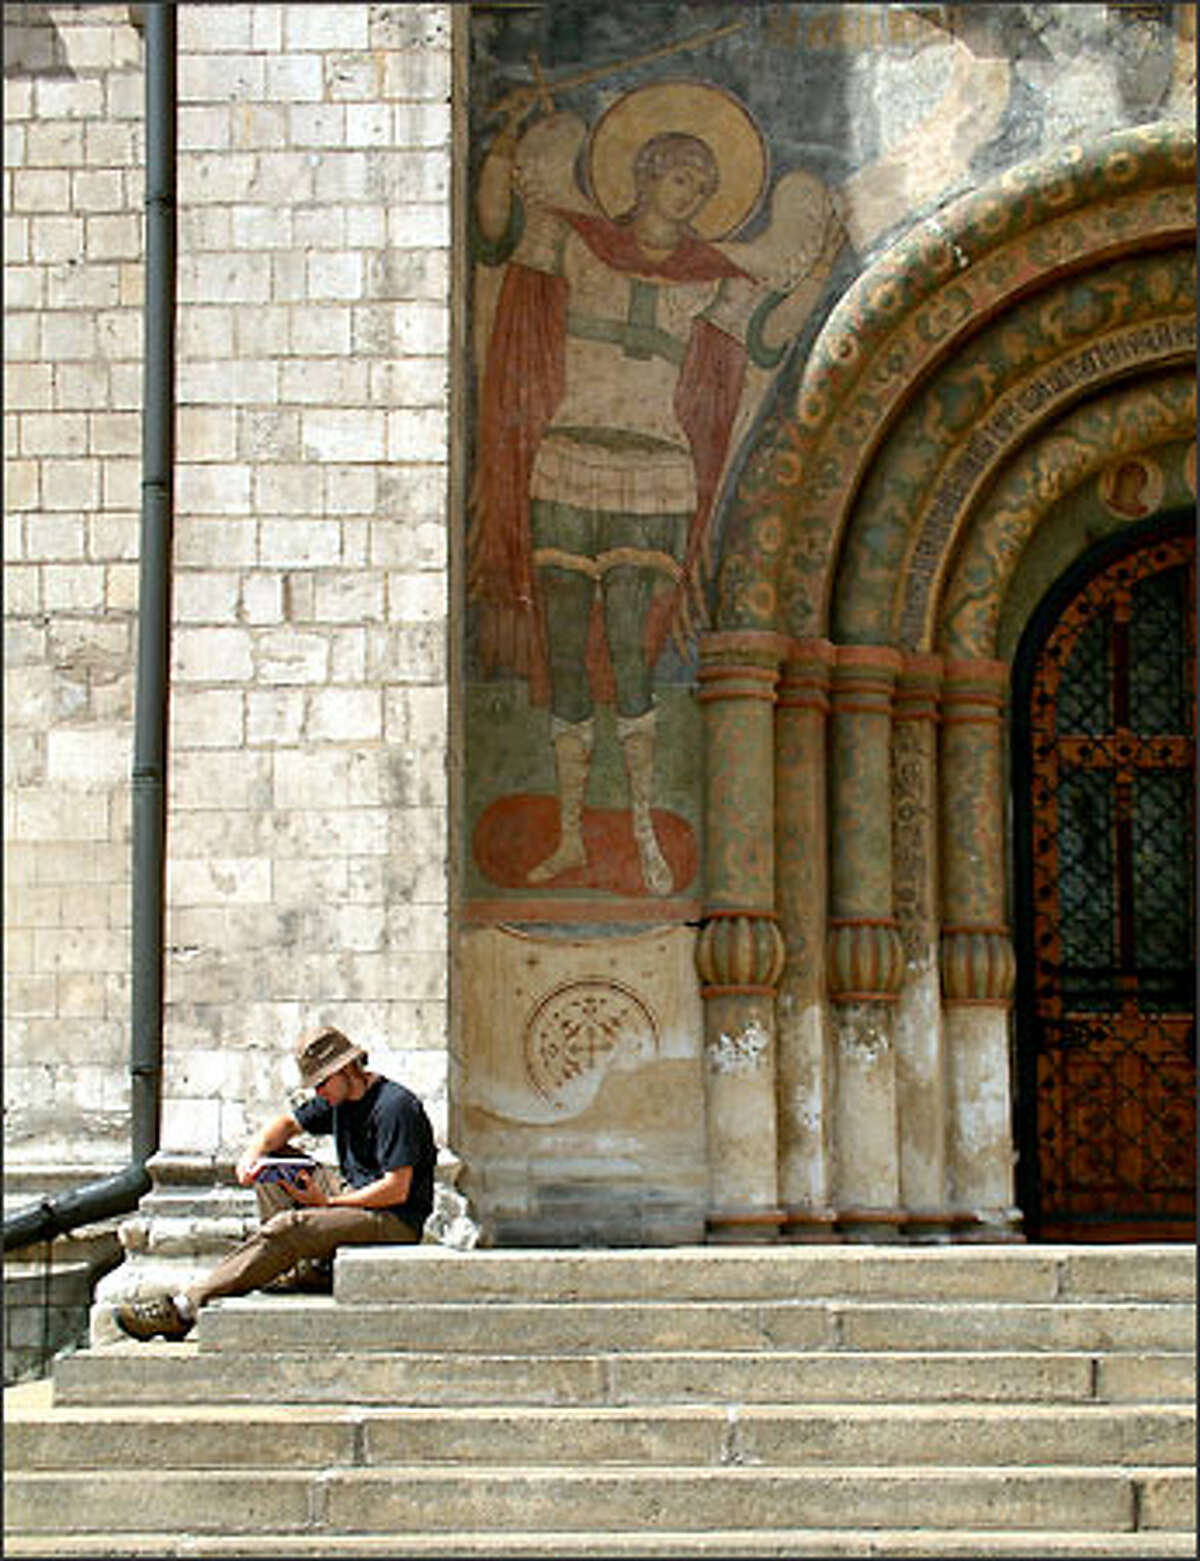 Richie relaxes on the steps of the Assumption Cathedral inside the Kremlin. The walled Kremlin is not only the seat of Russian political power but with its many churches and cathedrals it is also the heart of the Russian Orthodox Church. The Assumption Cathedral is the final resting place for many of the church's leaders.